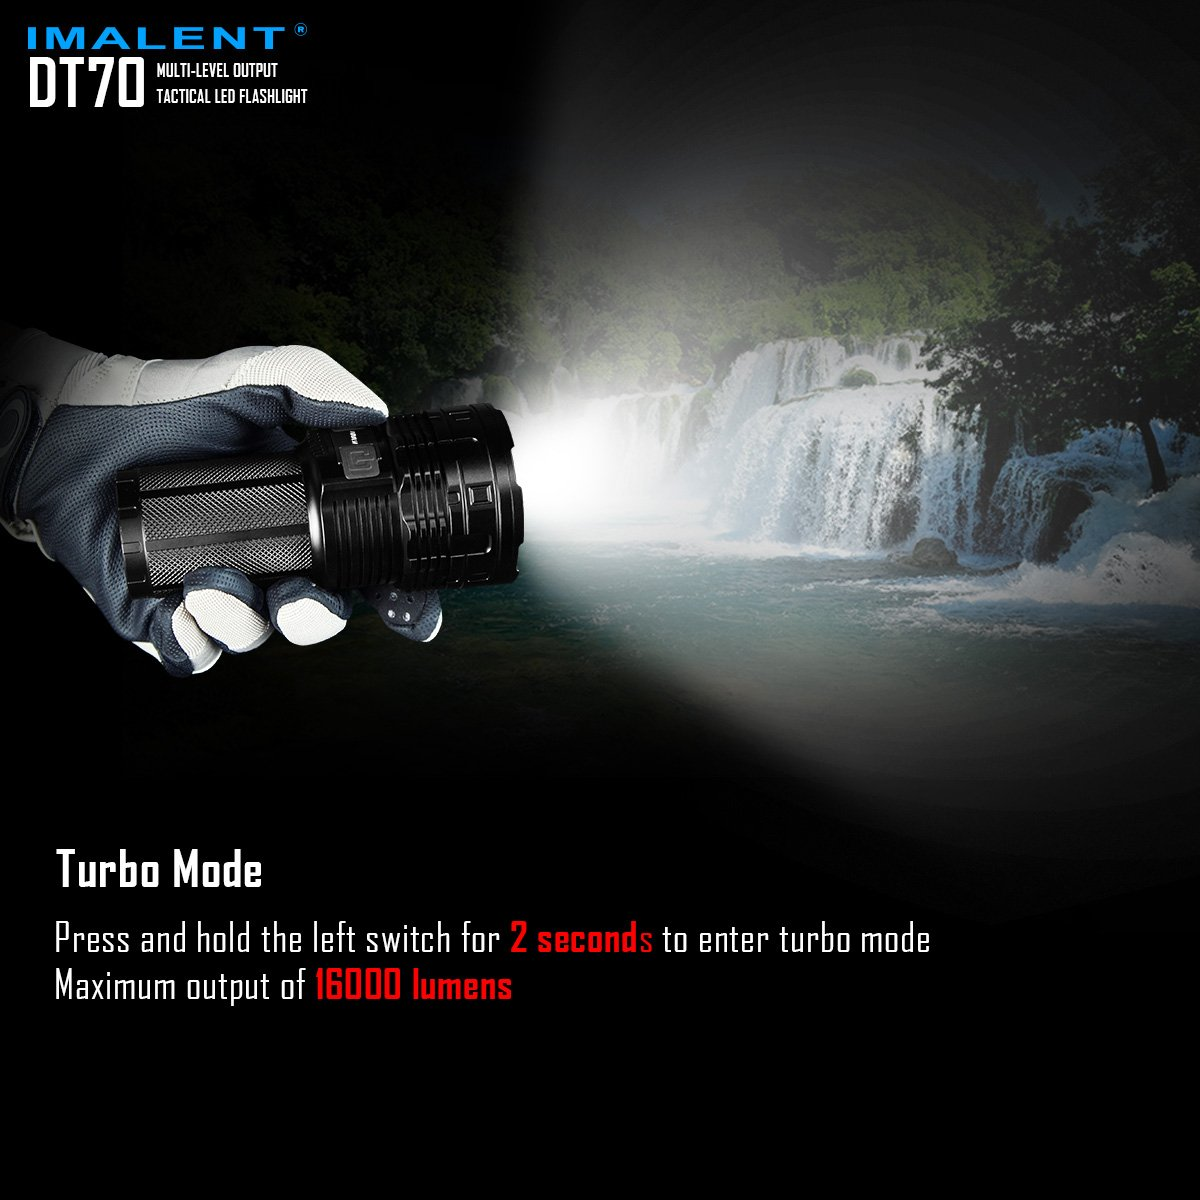 IMALENT DT70 Flashlights High Lumens Rechargeable 16000 Lumens 4 Pcs CREE XHP70 LEDs, Portable Handheld Torch by IMALENT (Image #8)